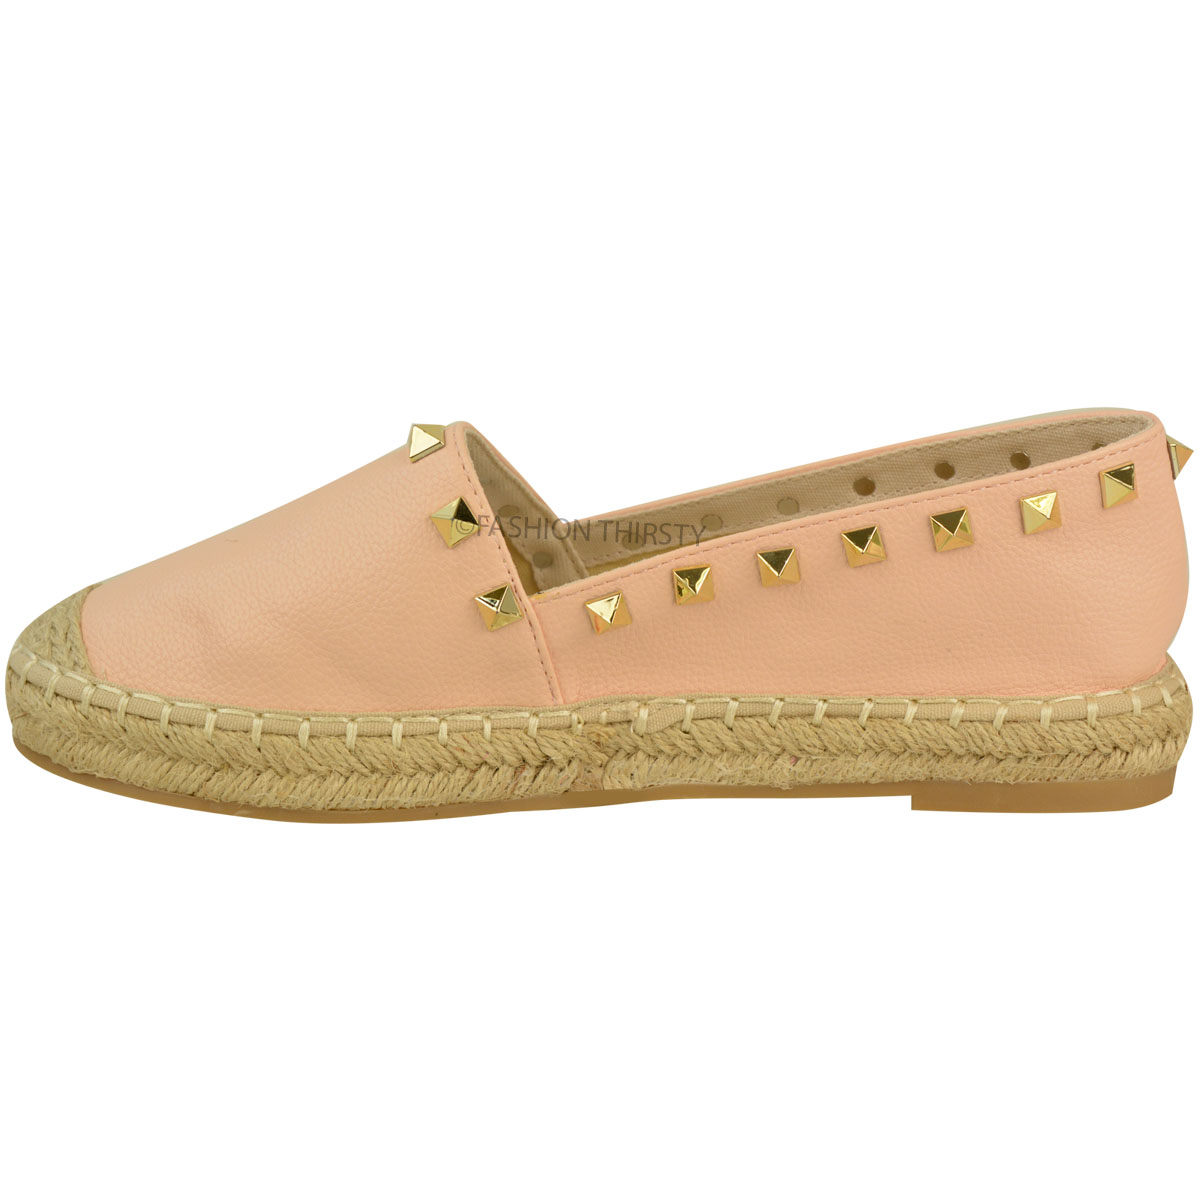 Womens Ladies Slip On Flat Espadrilles Summer Shoes Stud ...